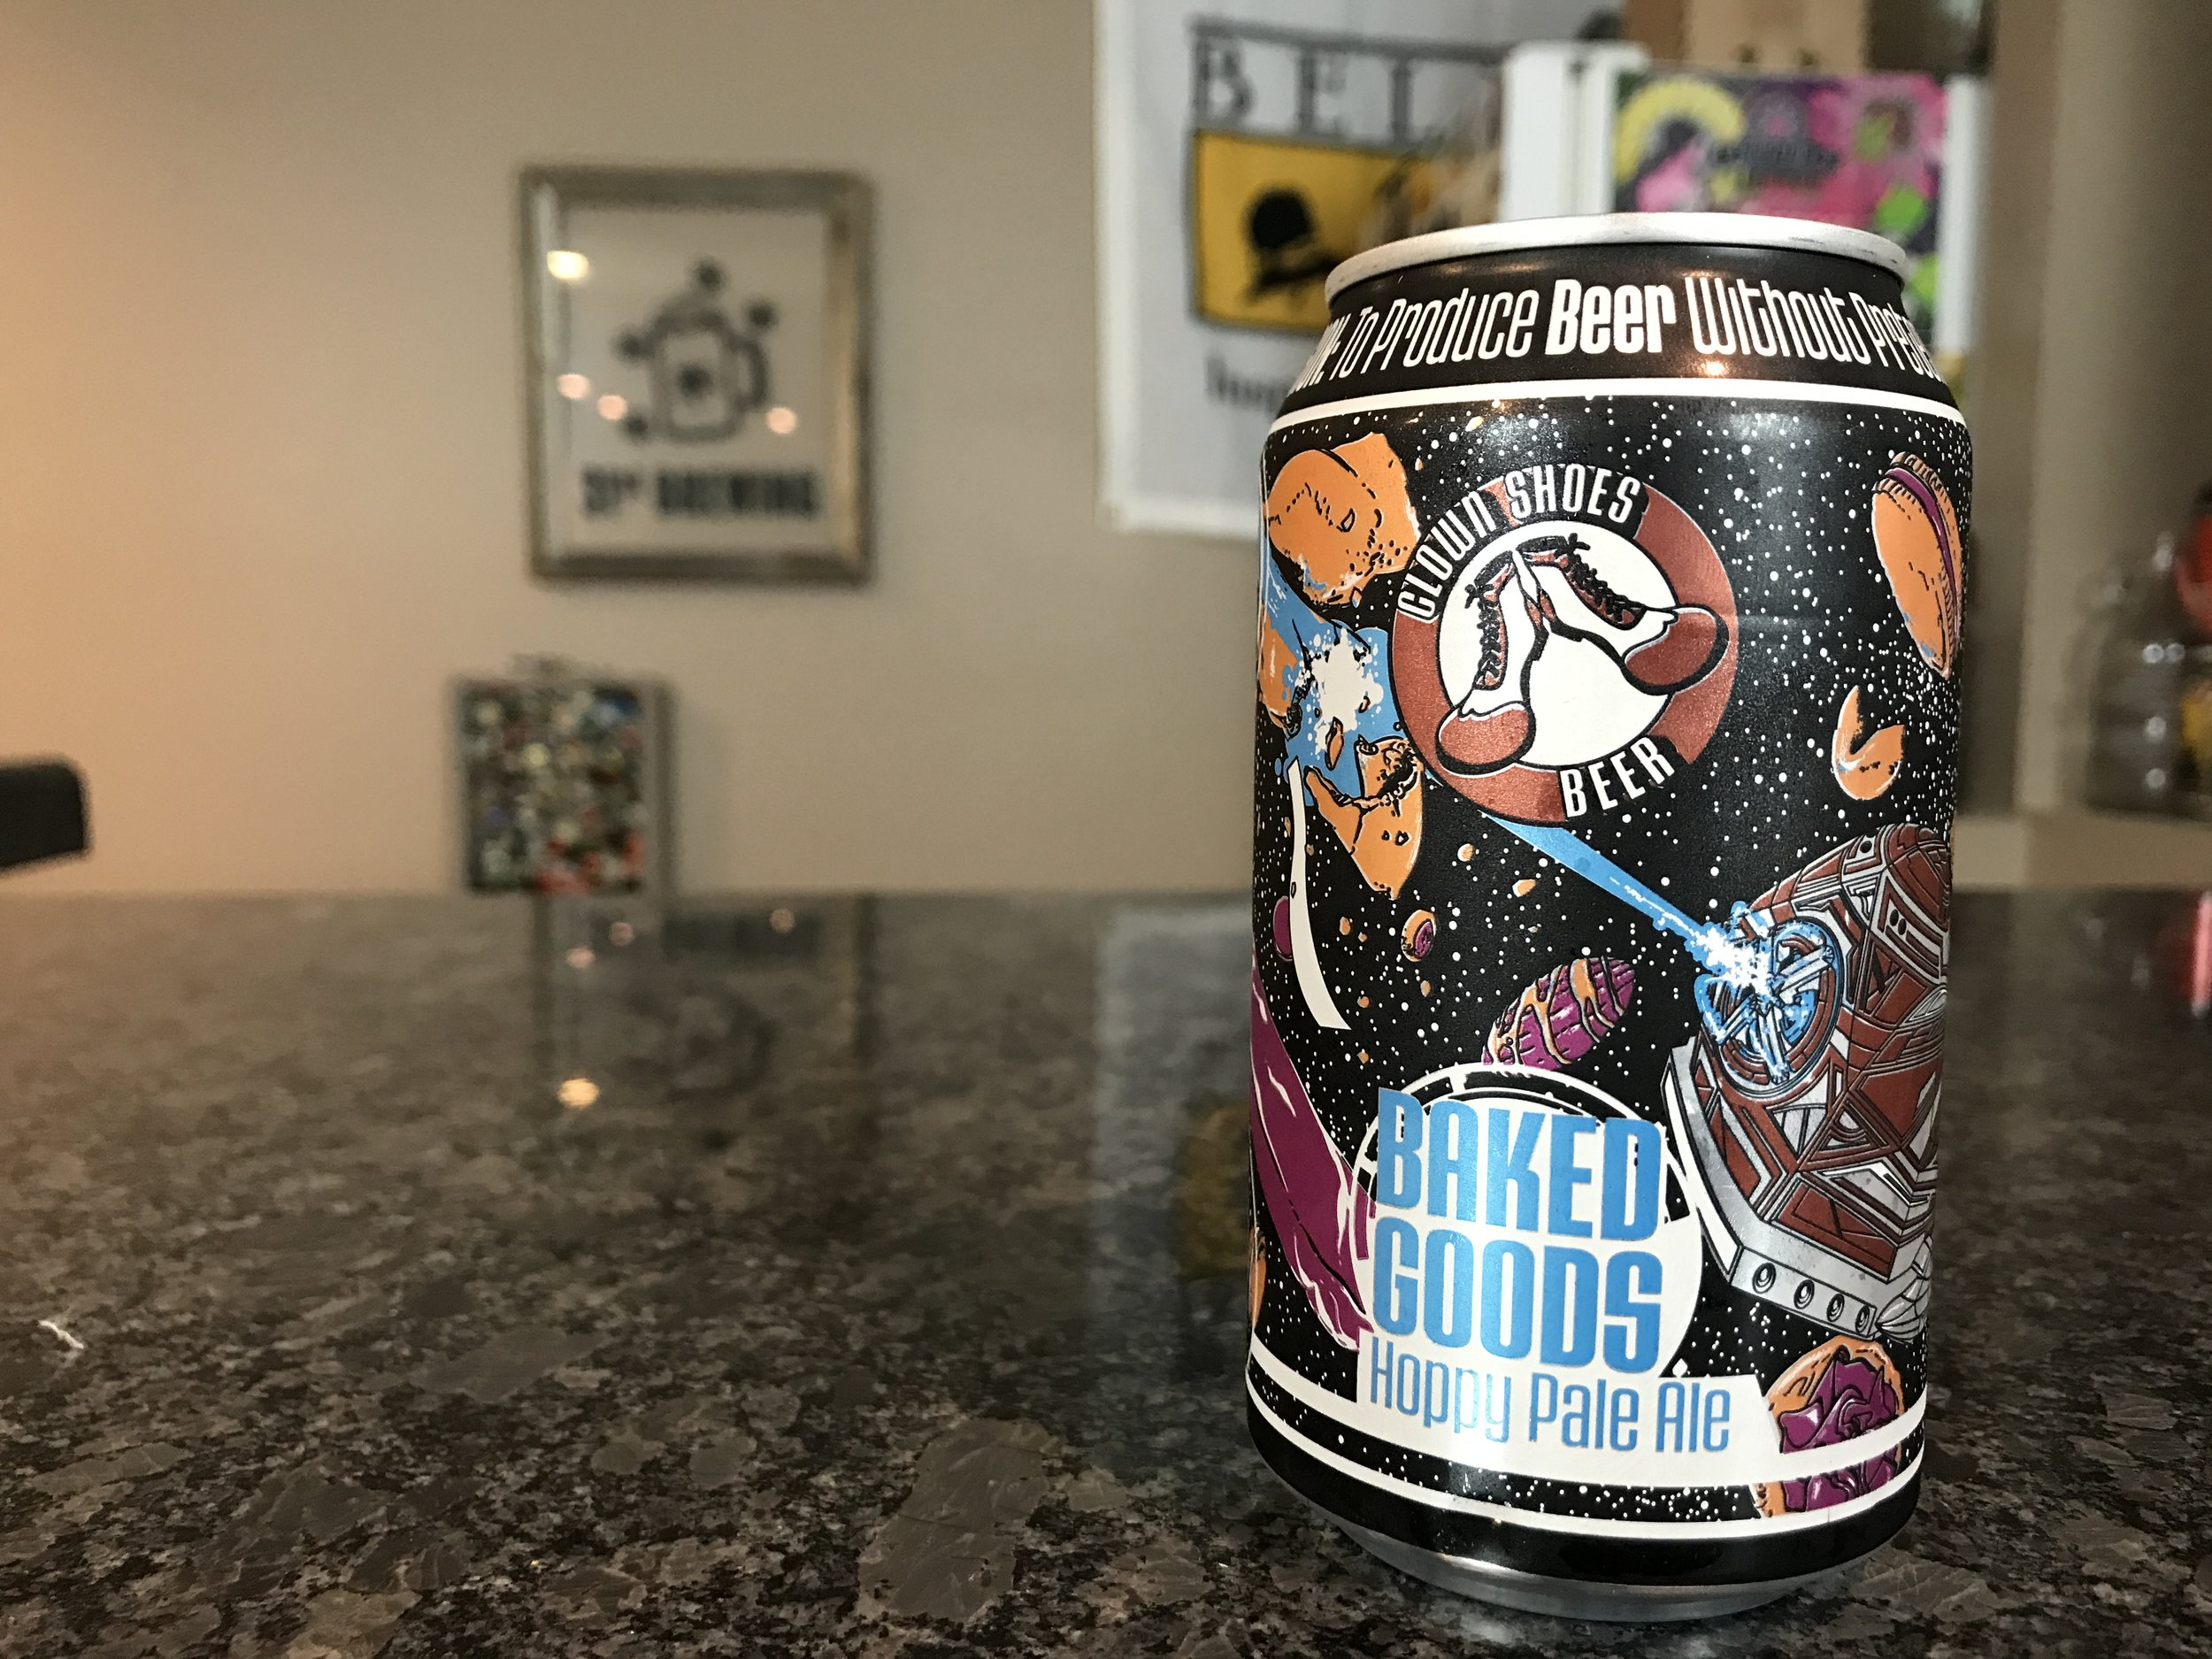 Baked Goods 5.5% ABV - Want to see the Video review? Click on the image.